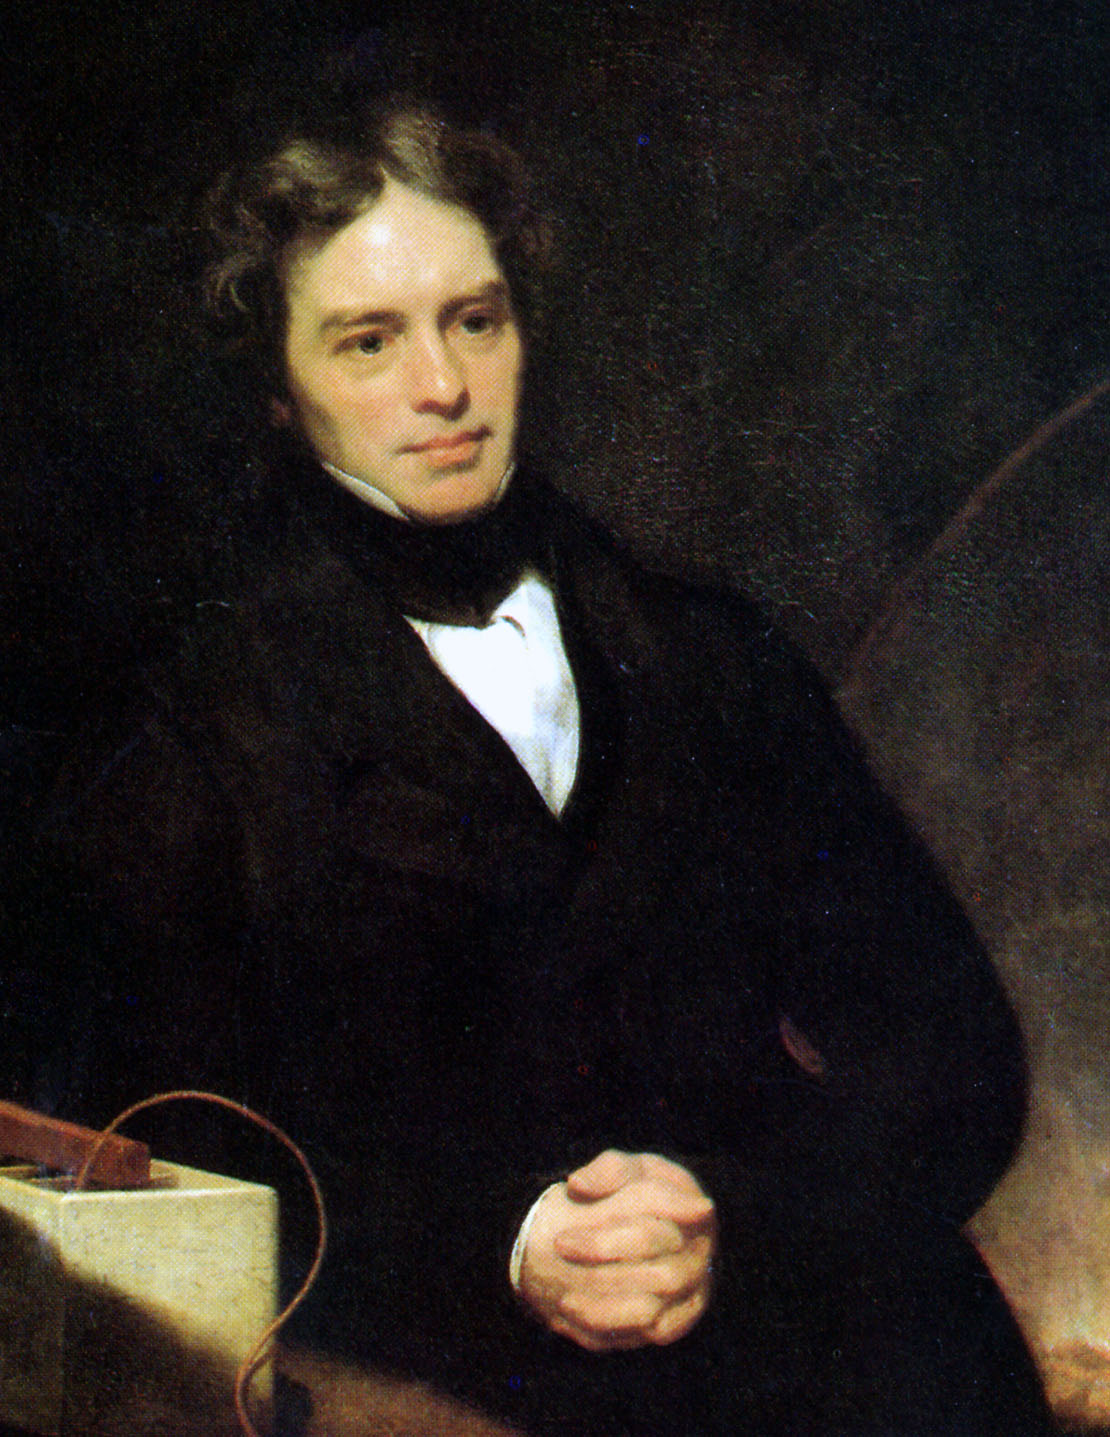 http://upload.wikimedia.org/wikipedia/commons/8/88/M_Faraday_Th_Phillips_oil_1842.jpg